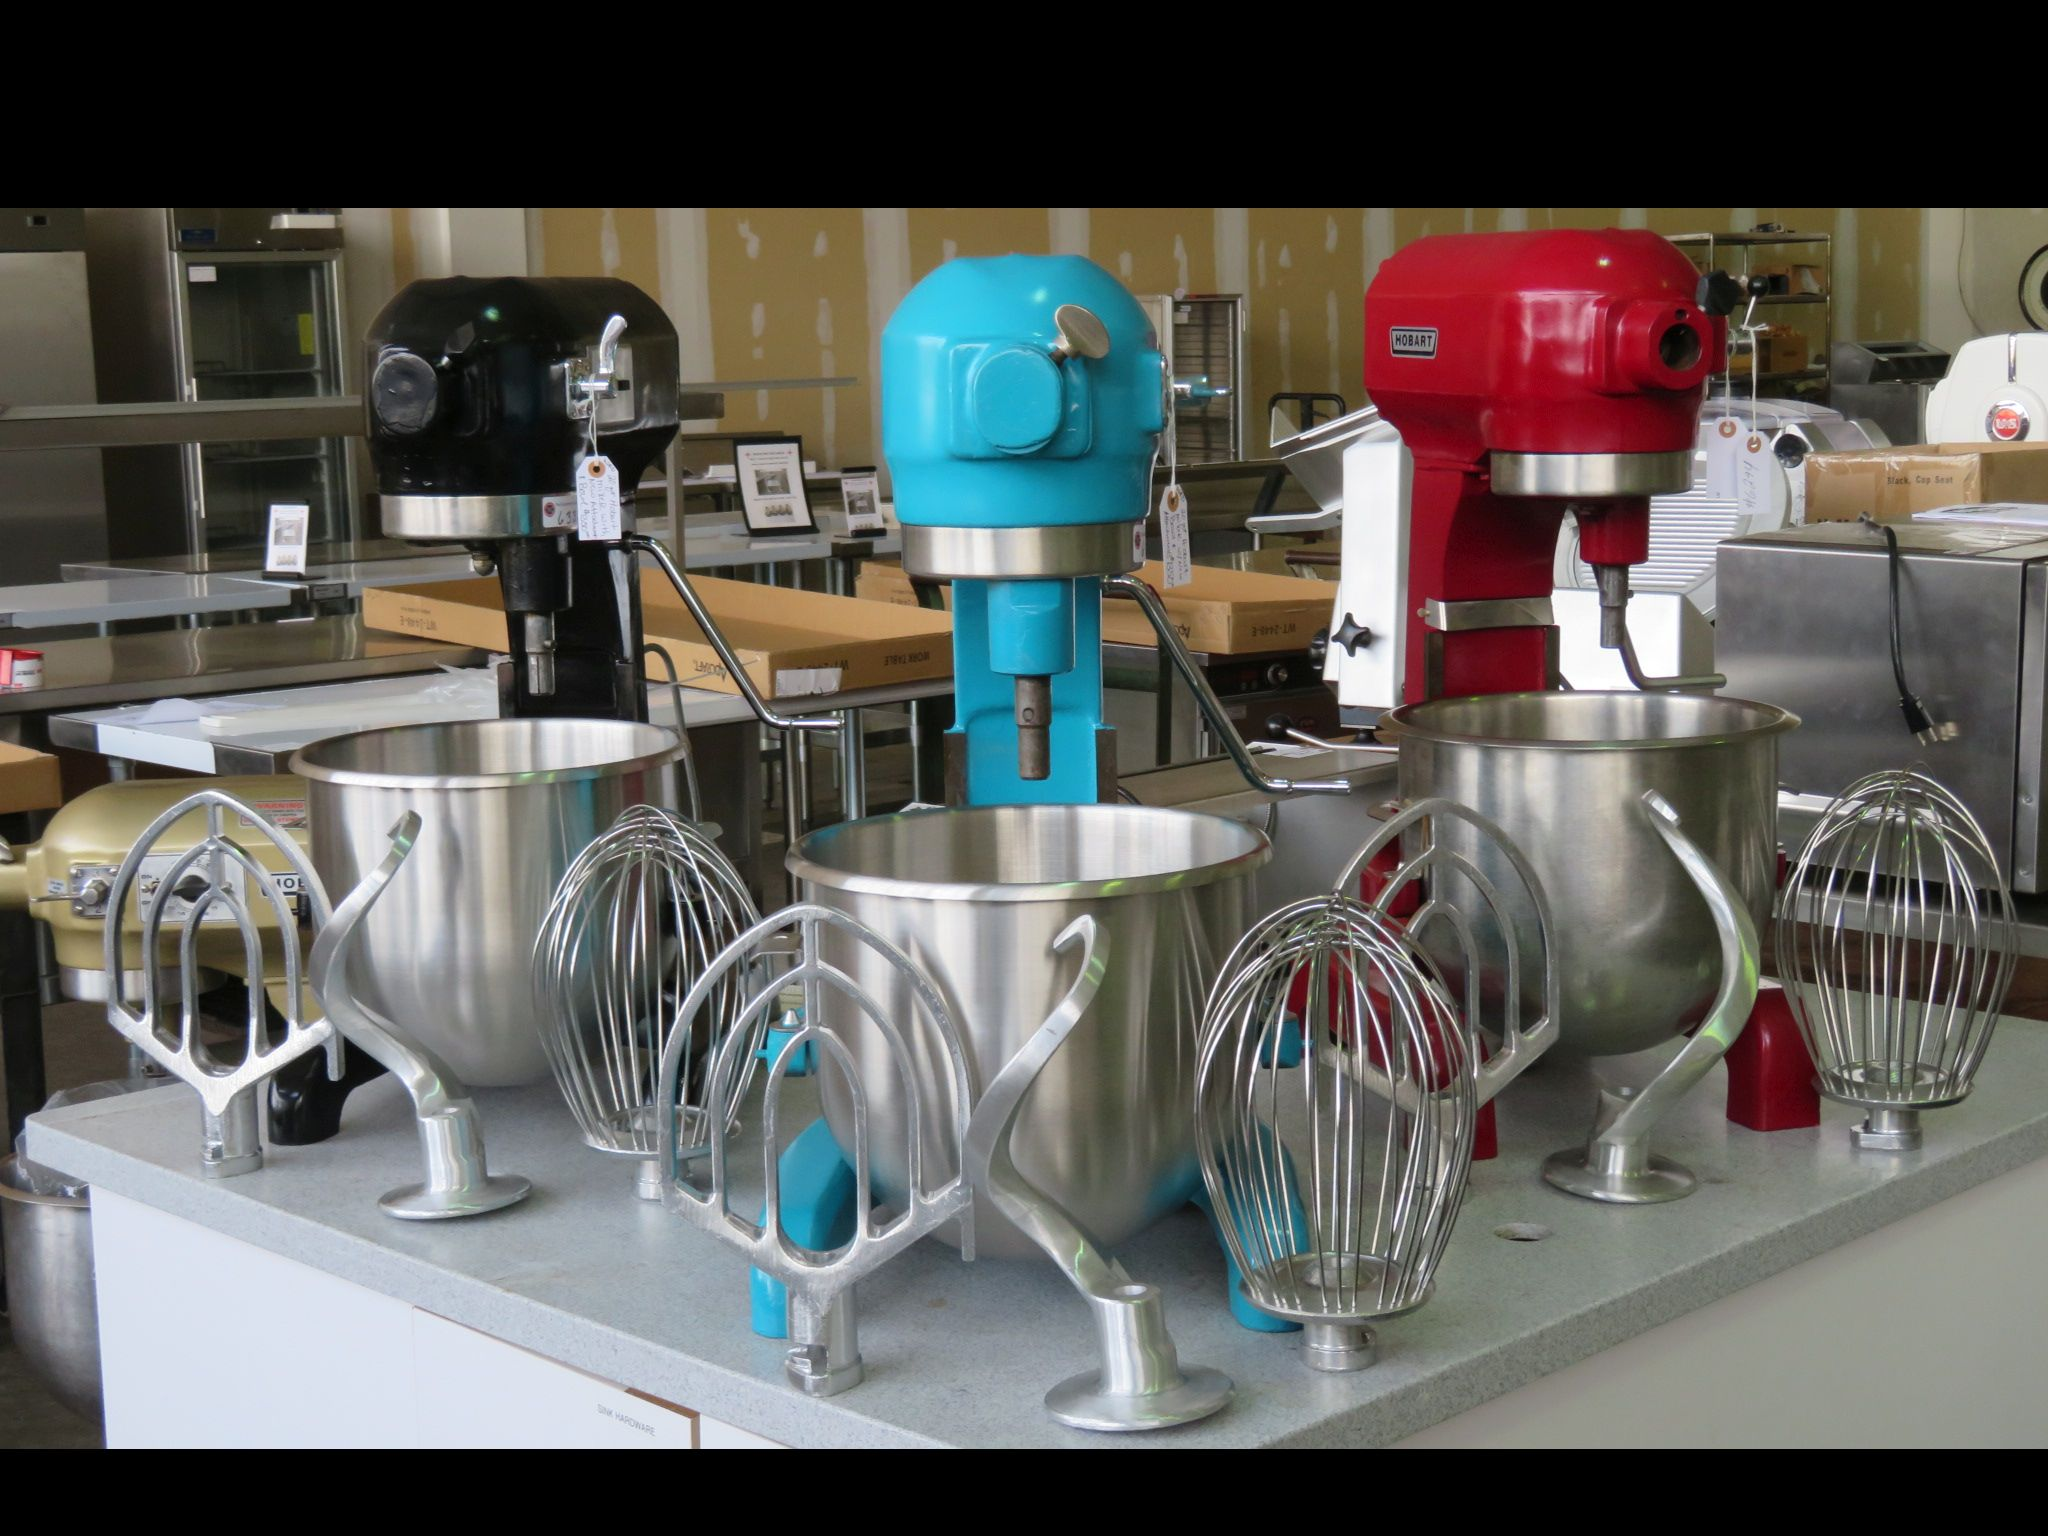 Mixers, Slicers and Food Processors